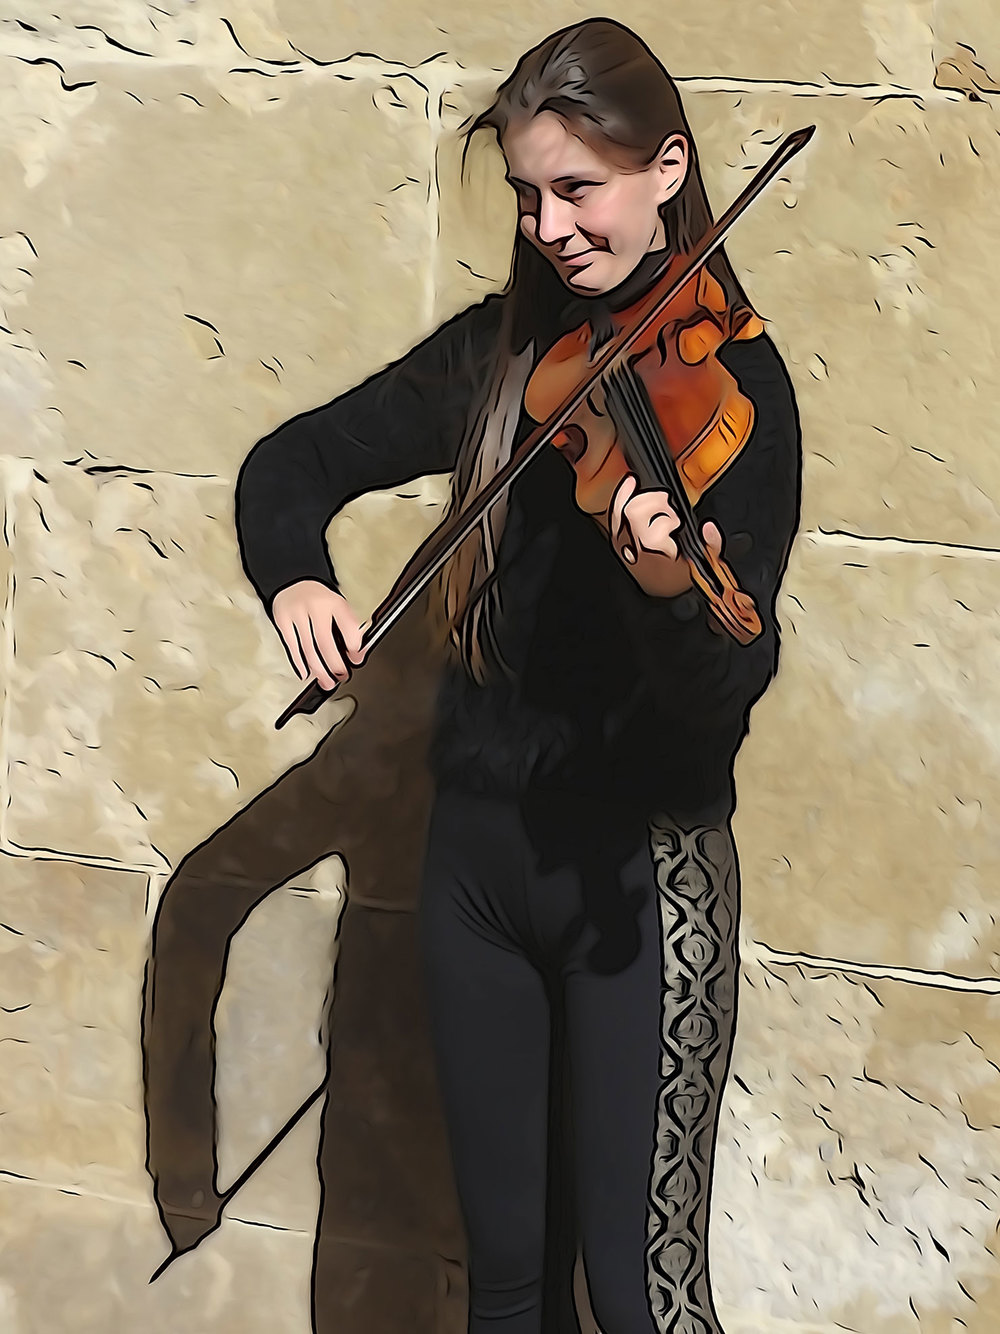 Creative Bohemian Playing Violin - Female Engaged In What She Loves To Do